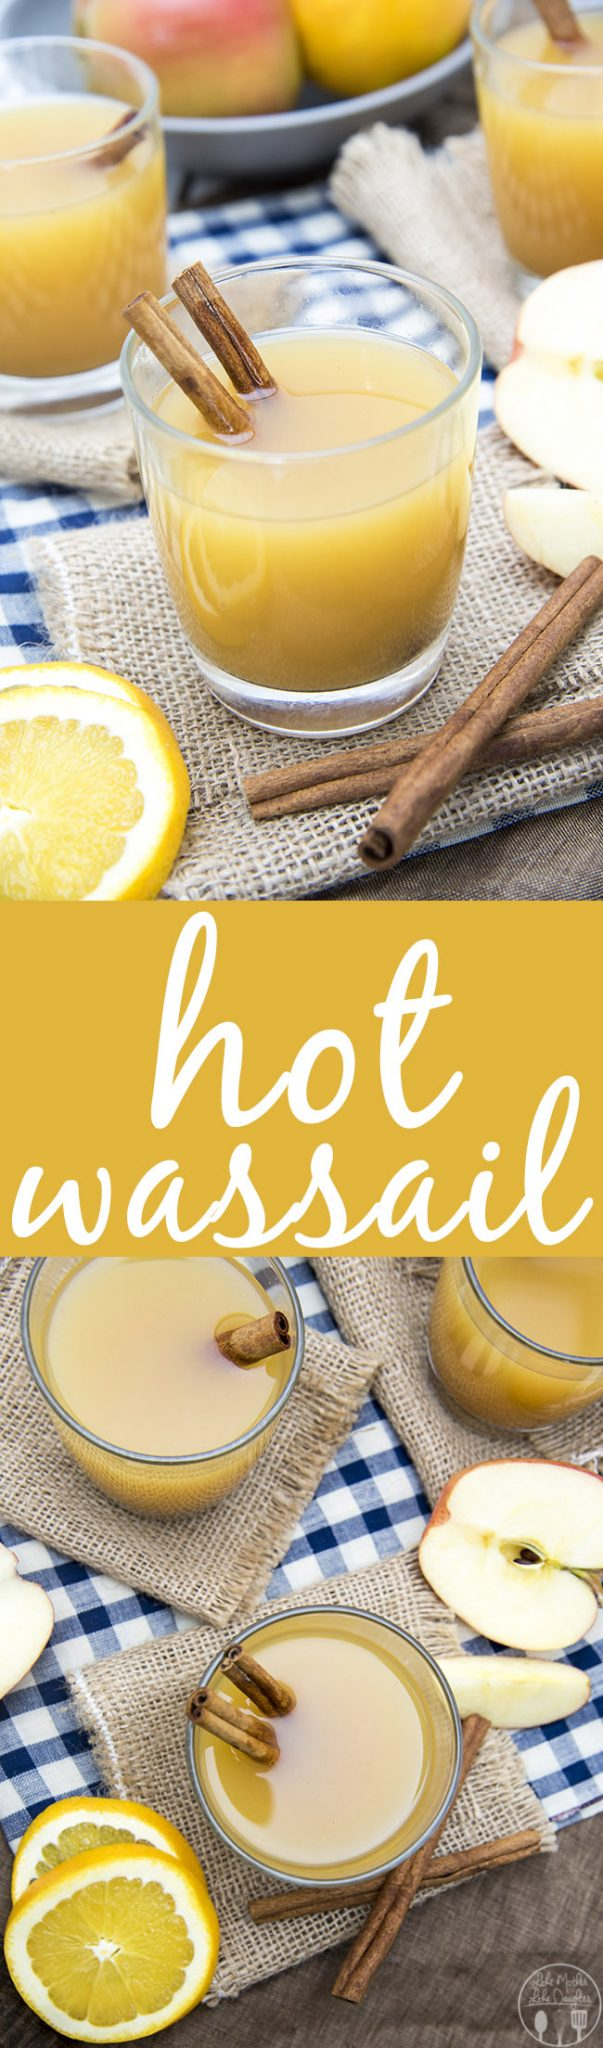 This Hot wassail recipe combines apple cider, pineapple juice and orange juice with a great cinnamon undertone for a perfect holiday drink! It can be made on the stove or in a slow cooker!